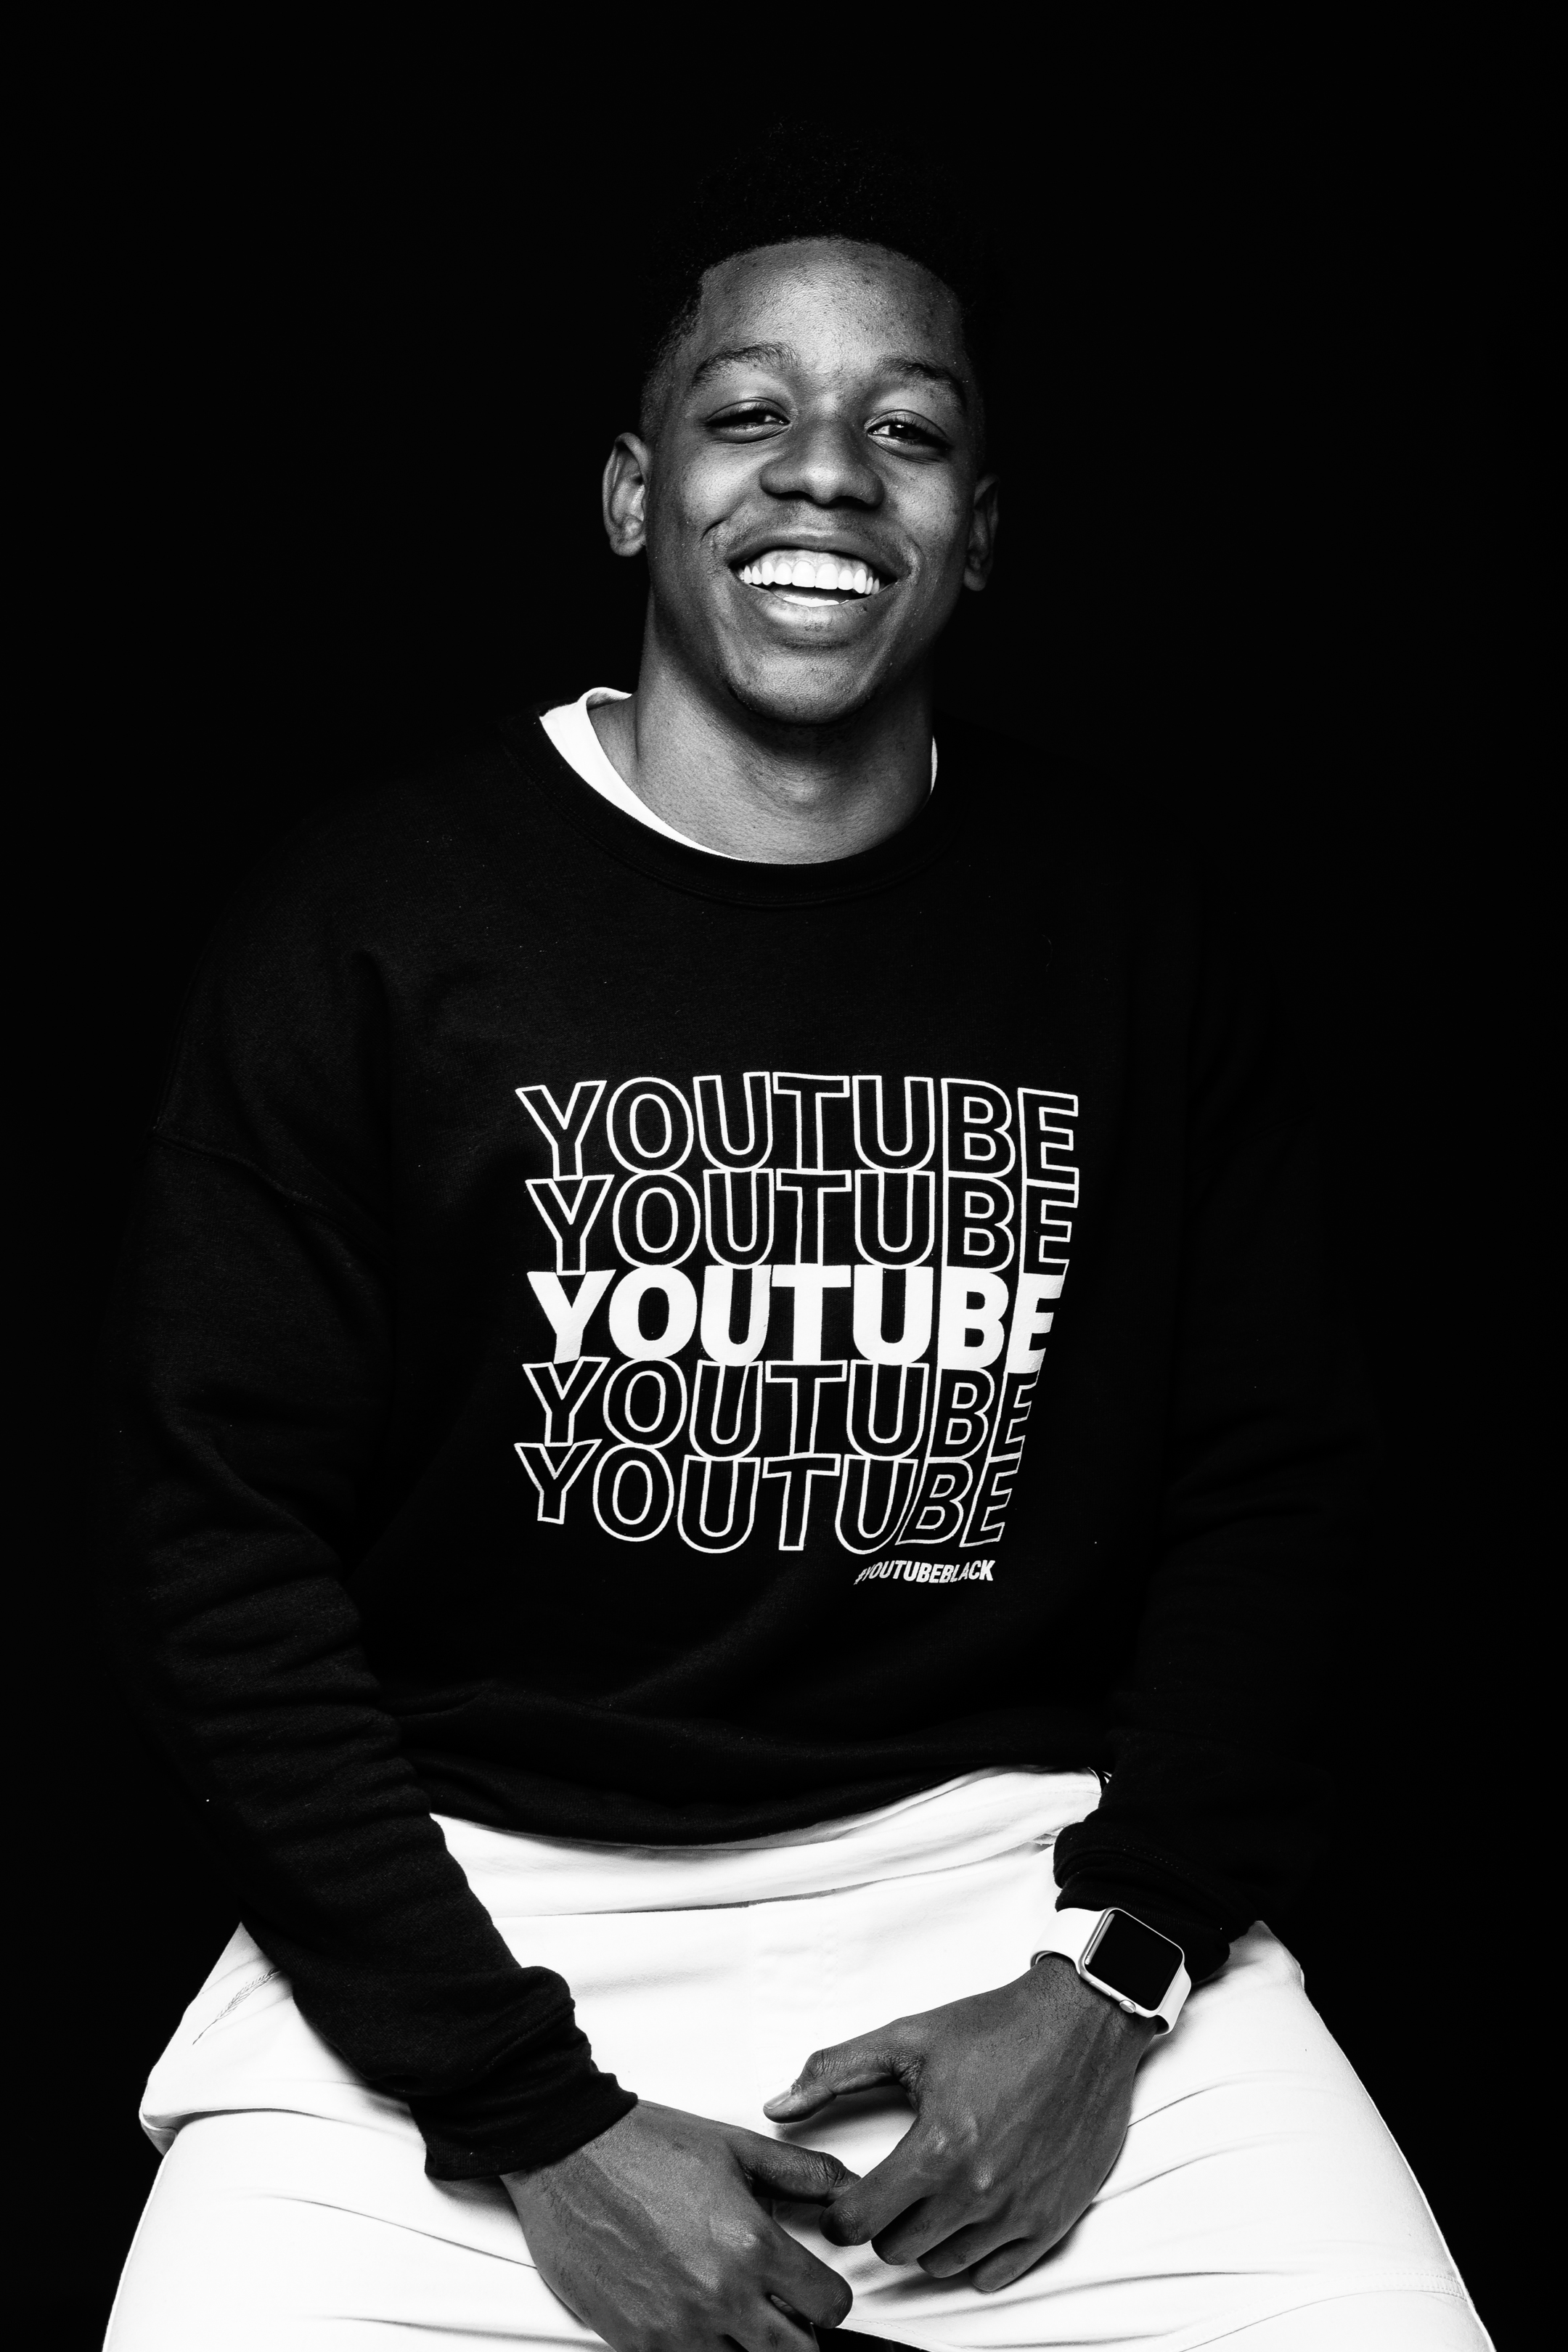 YOUTUBE BLACK PORTRAITS (102 of 231).jpg